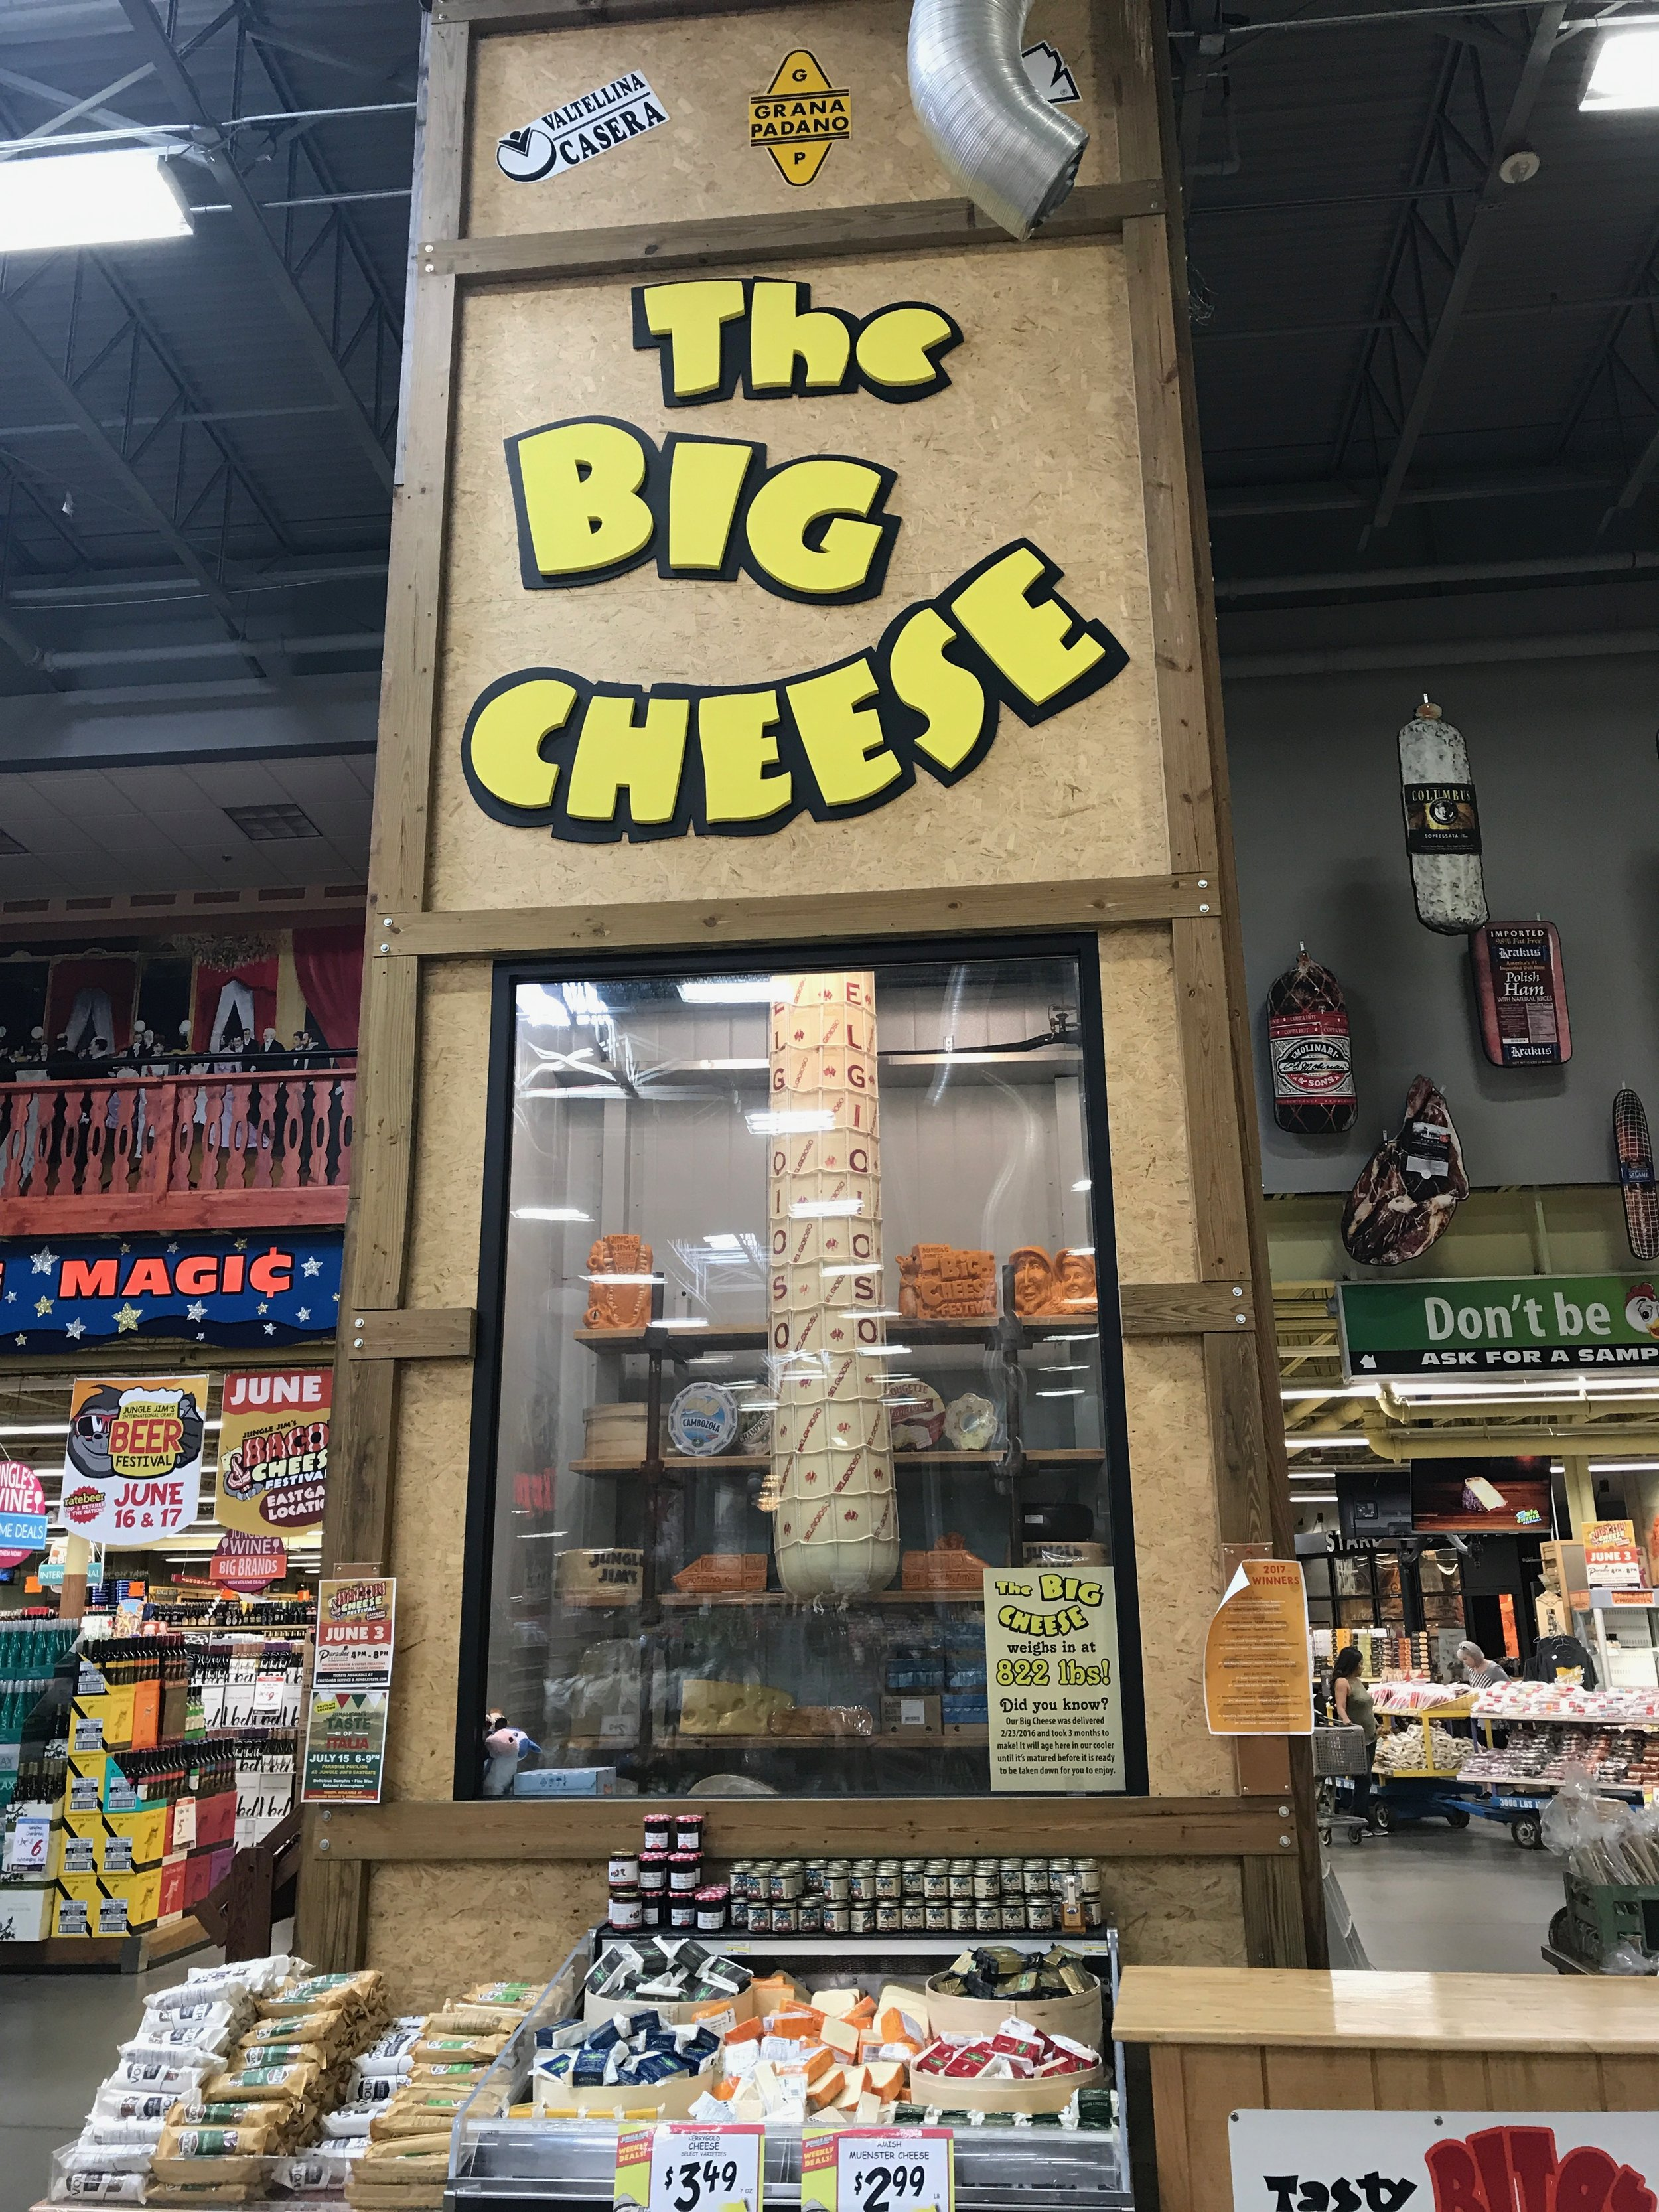 The giant 822 lb cheese!